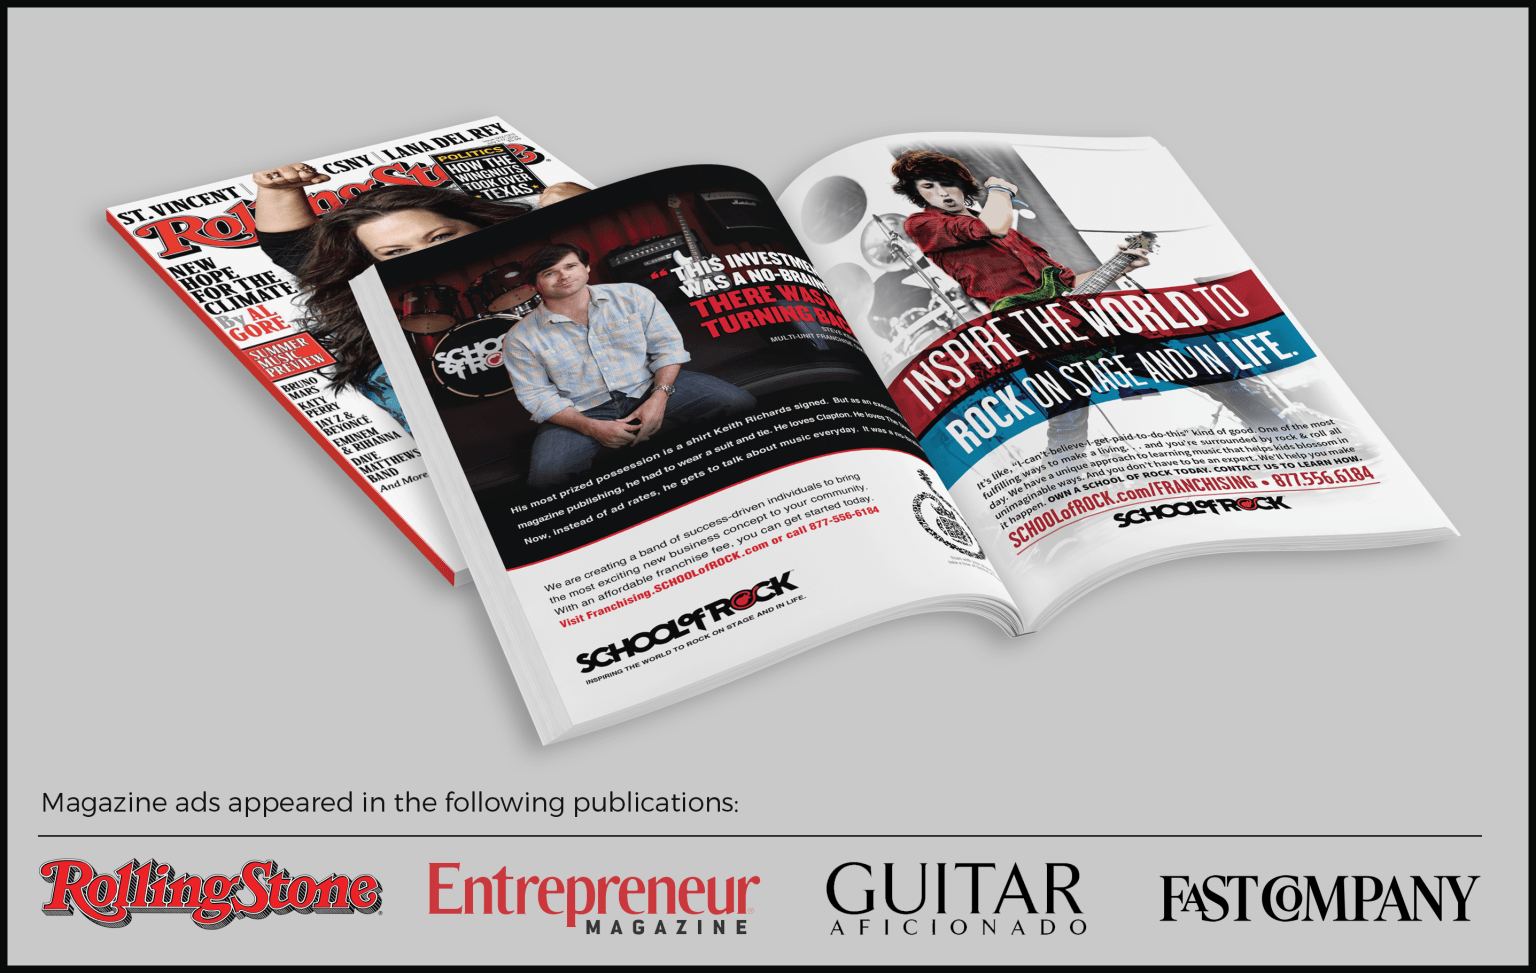 Rolling Stone Magazine ads for School of Rock